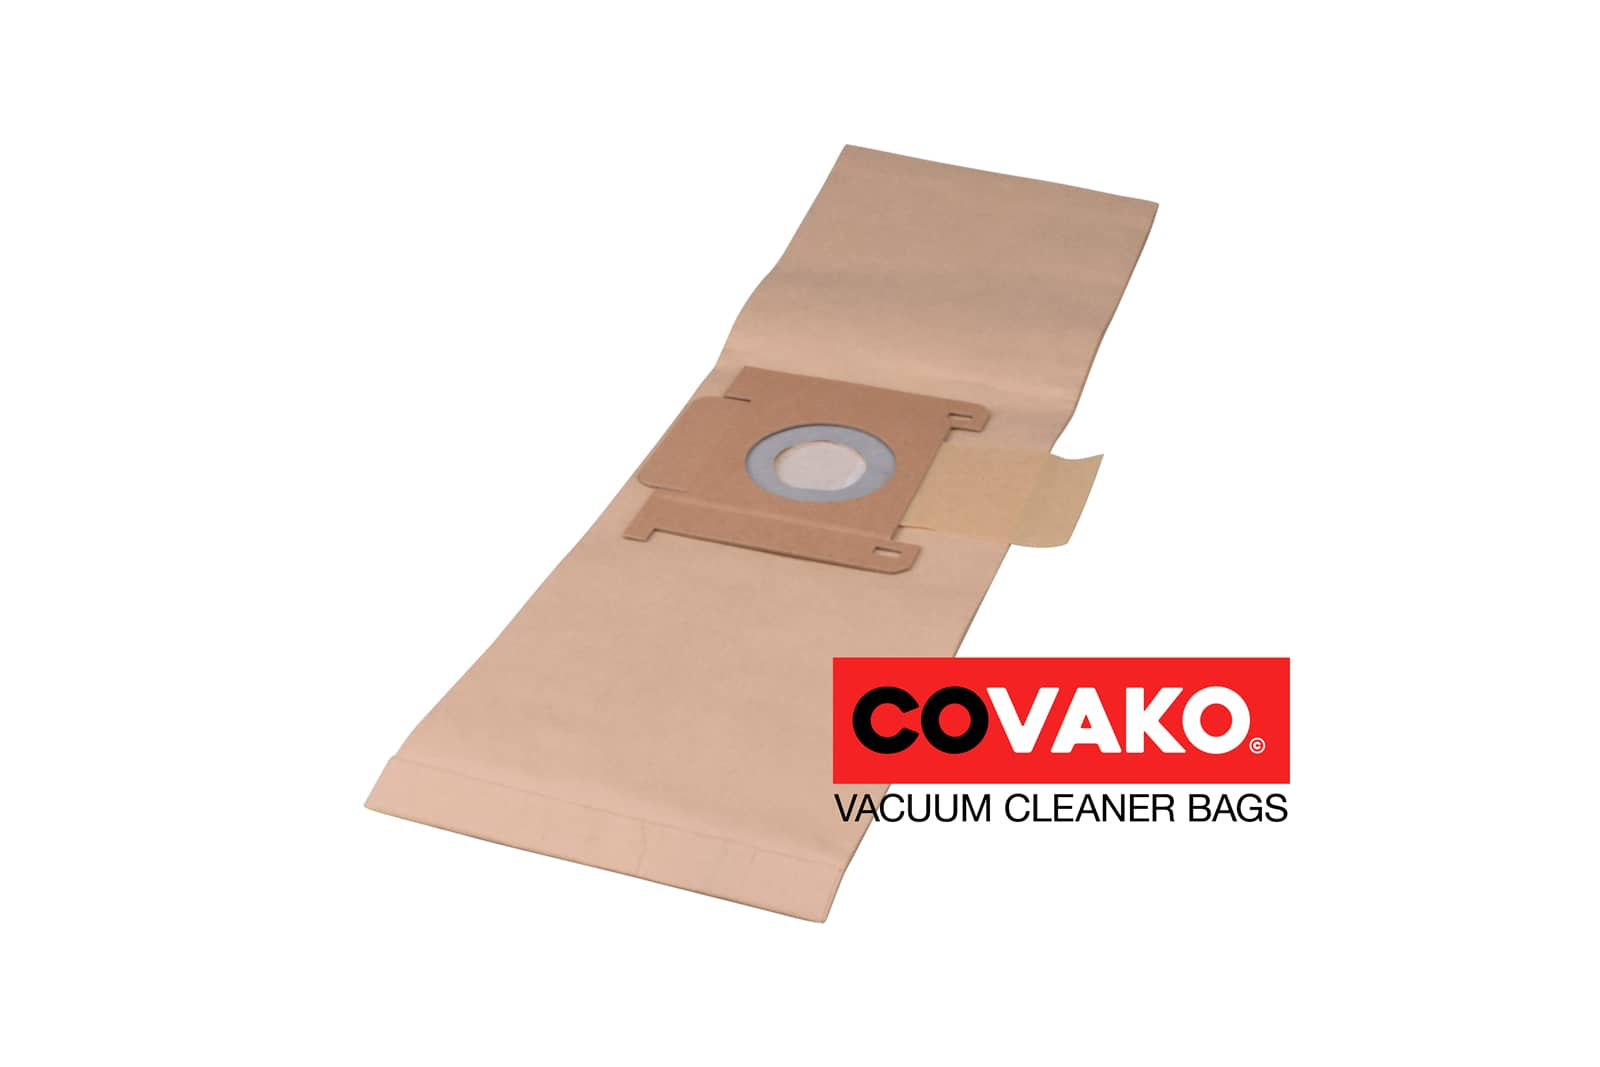 Clean a la Card Hi-Filtration 6.0 / Paper - Clean a la Card vacuum cleaner bags